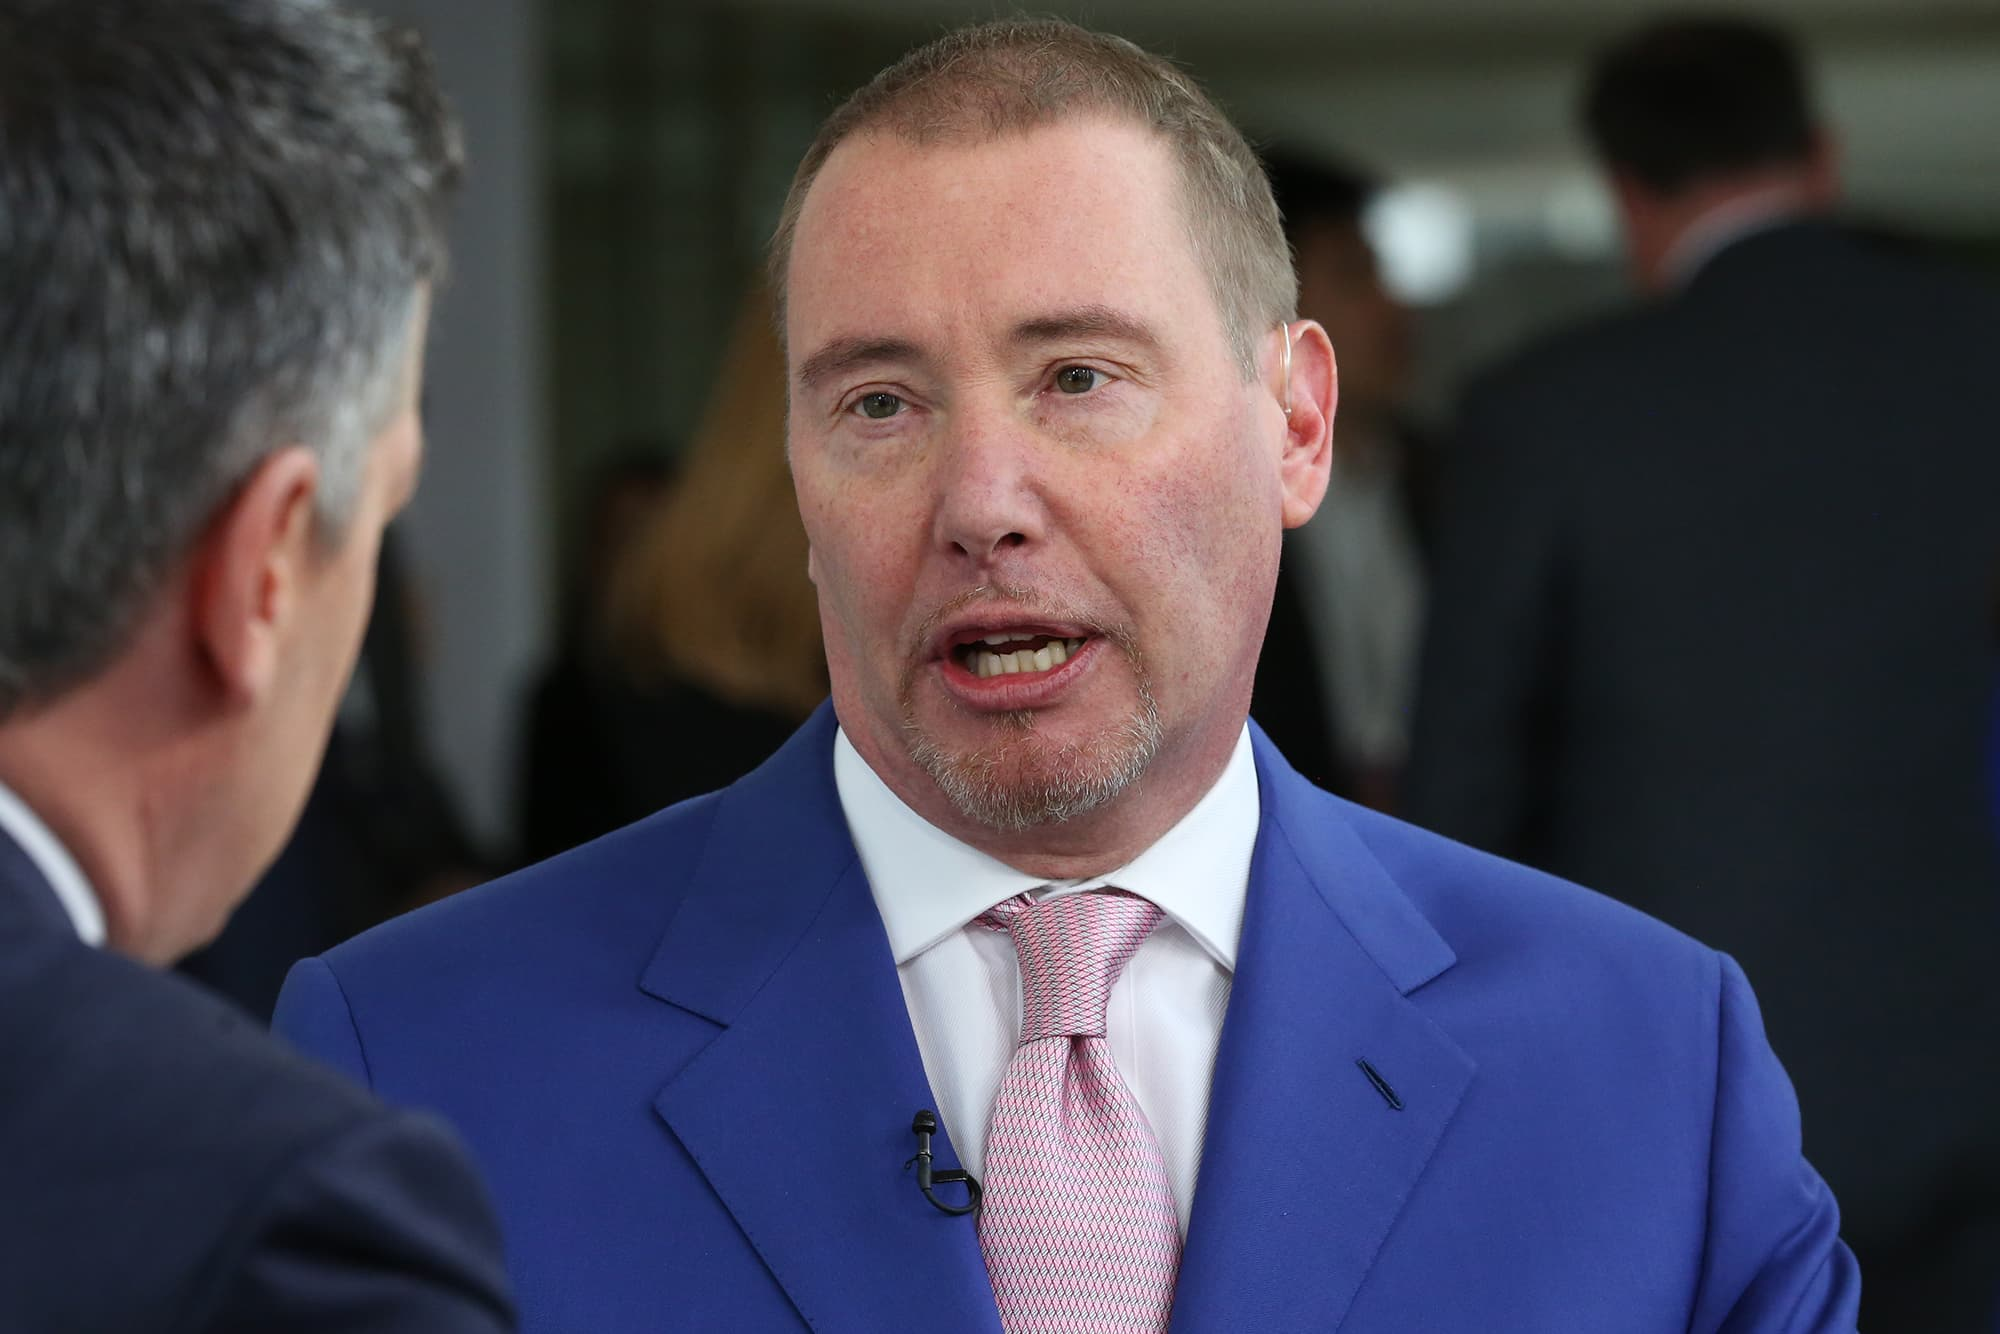 'Bond King' Gundlach says a recession is 'very unlikely' in 2020